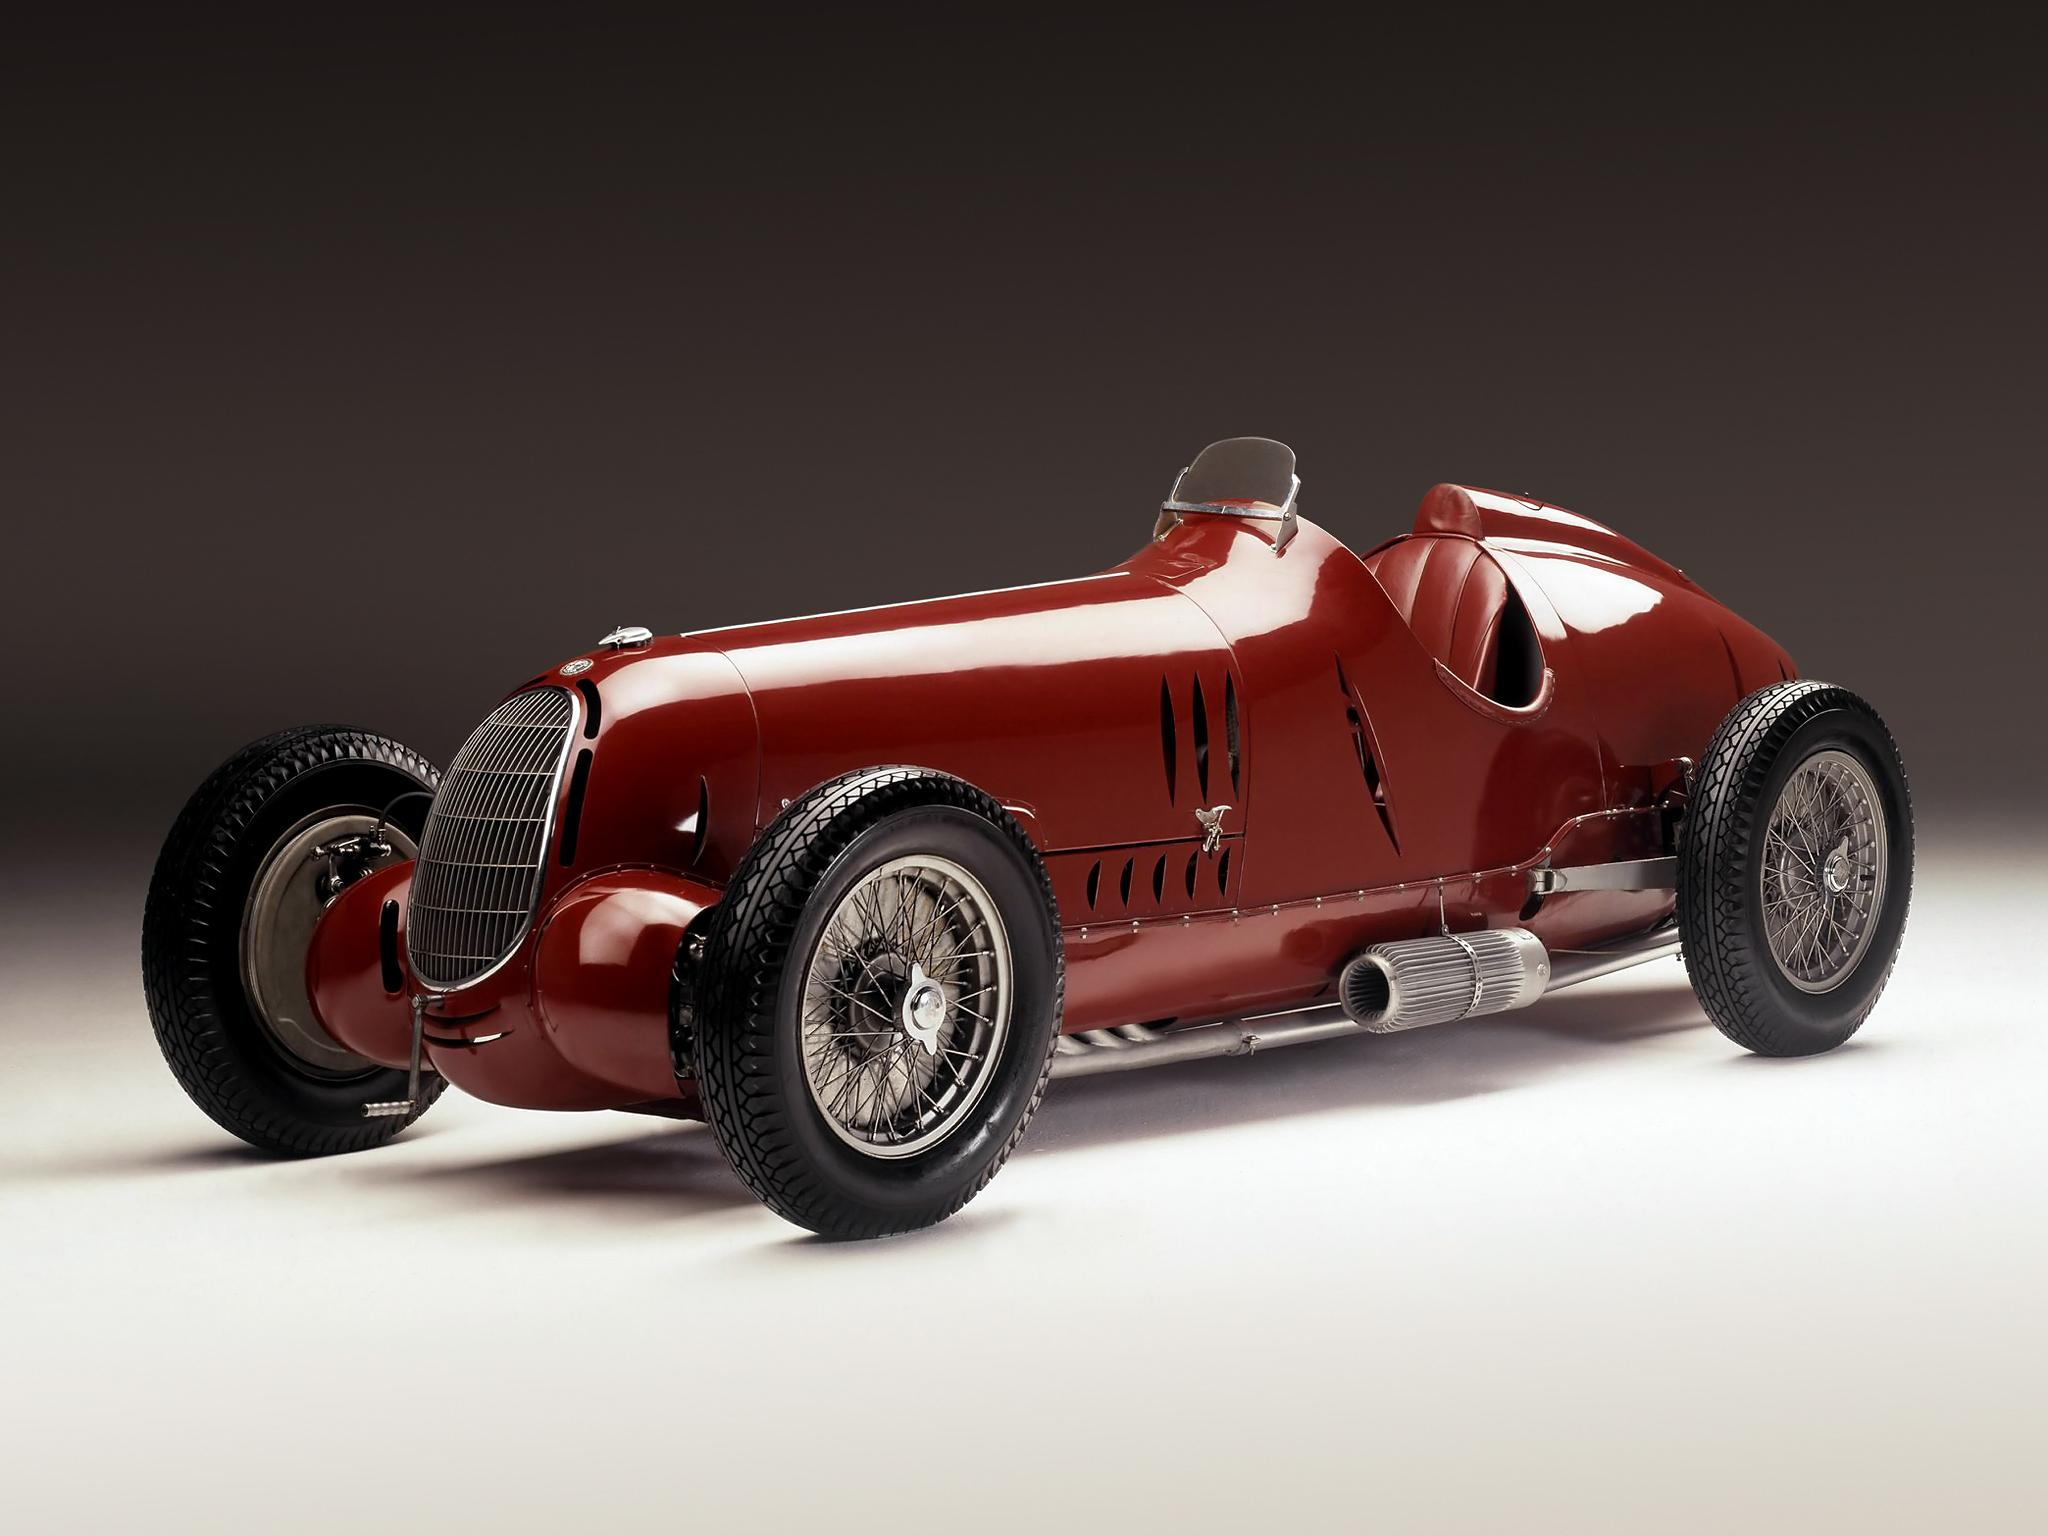 2048x1536 - Alfa Romeo 12C GTS Wallpapers 5